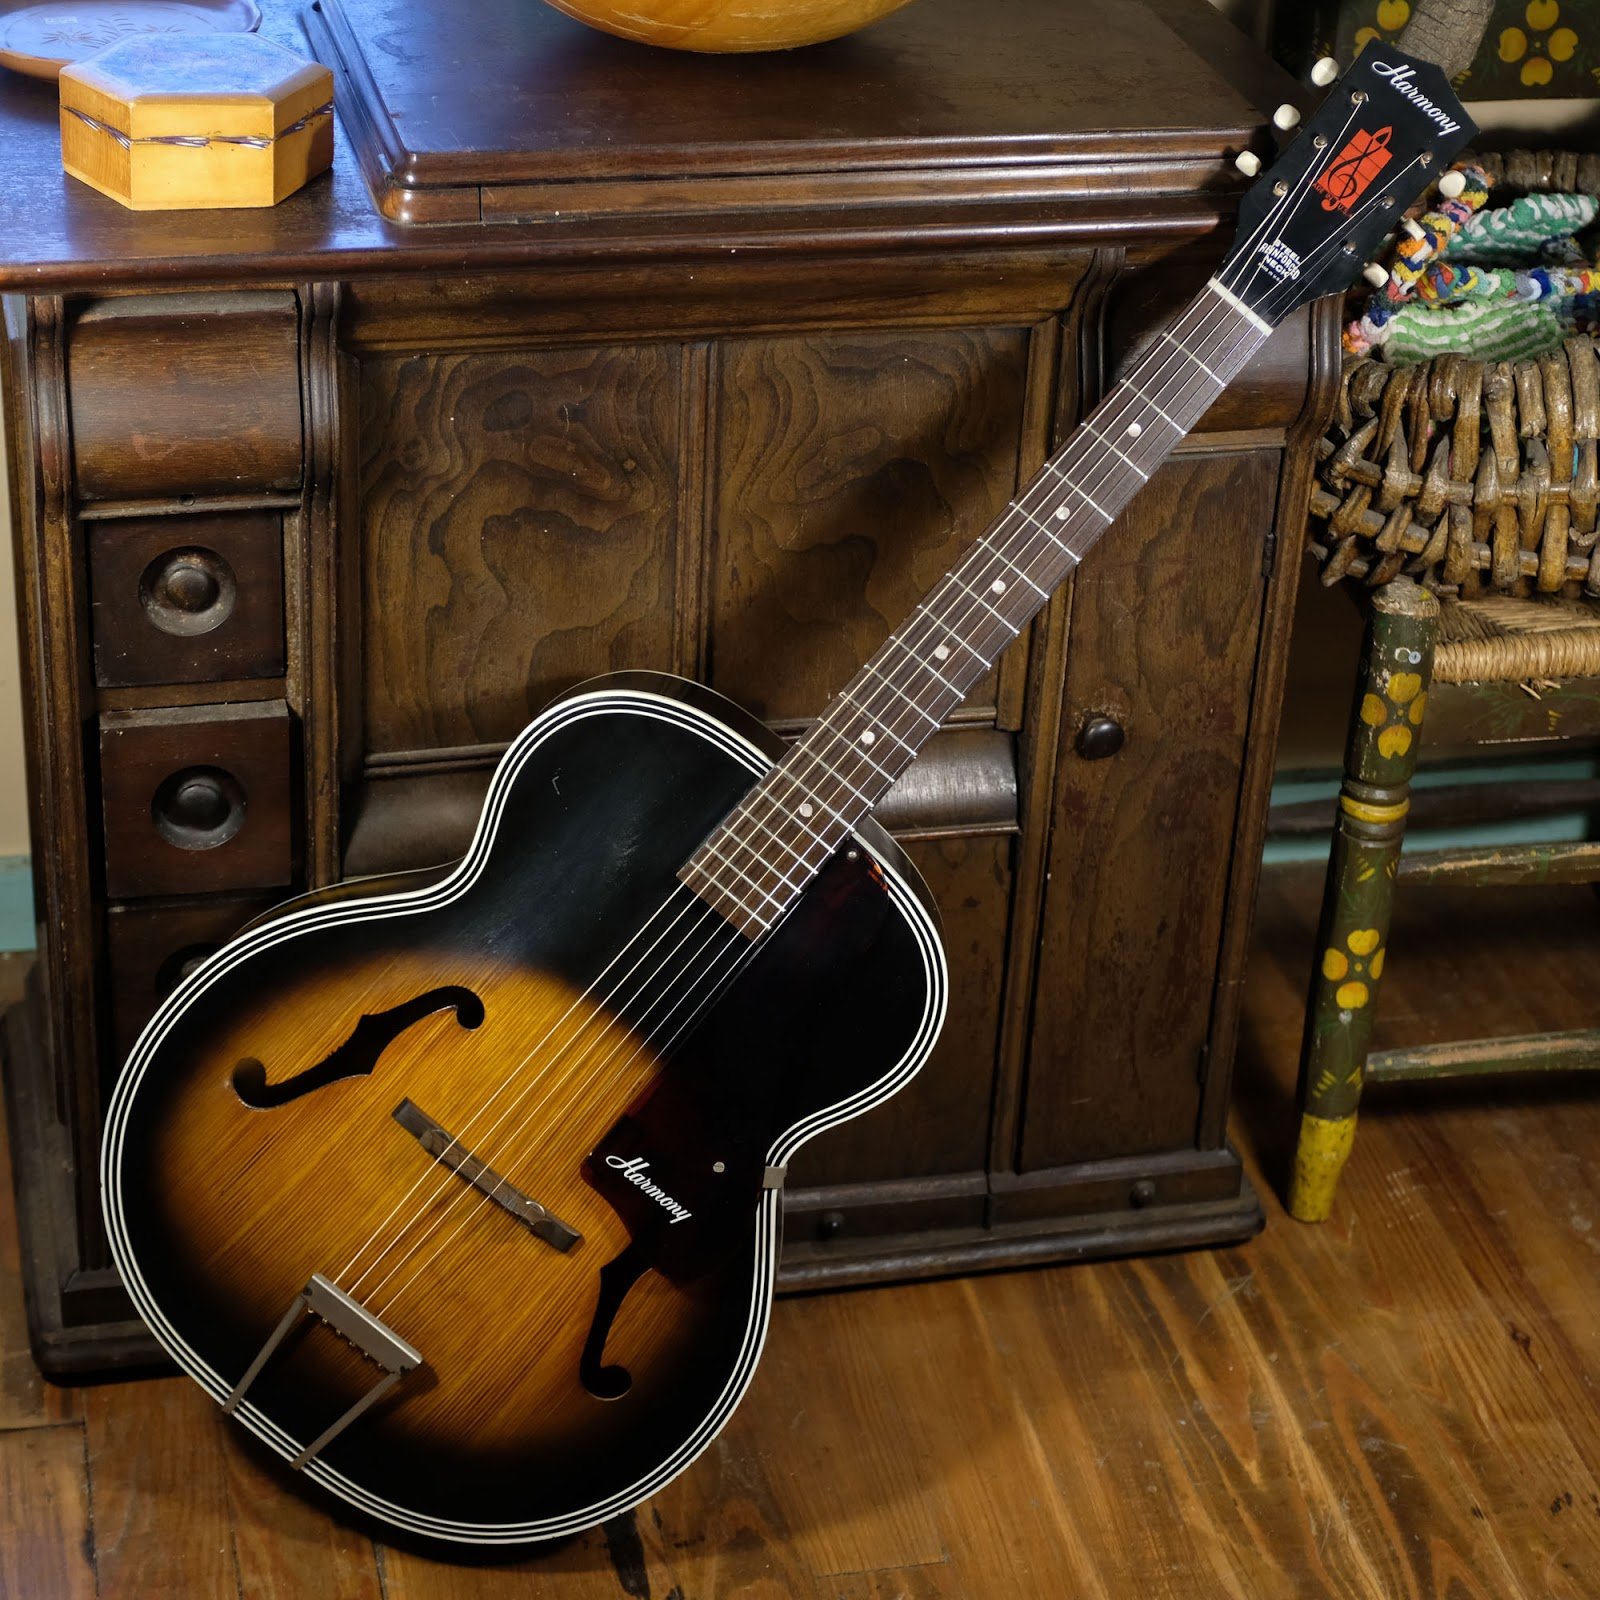 1960s Harmony H1215 Archtop Guitar